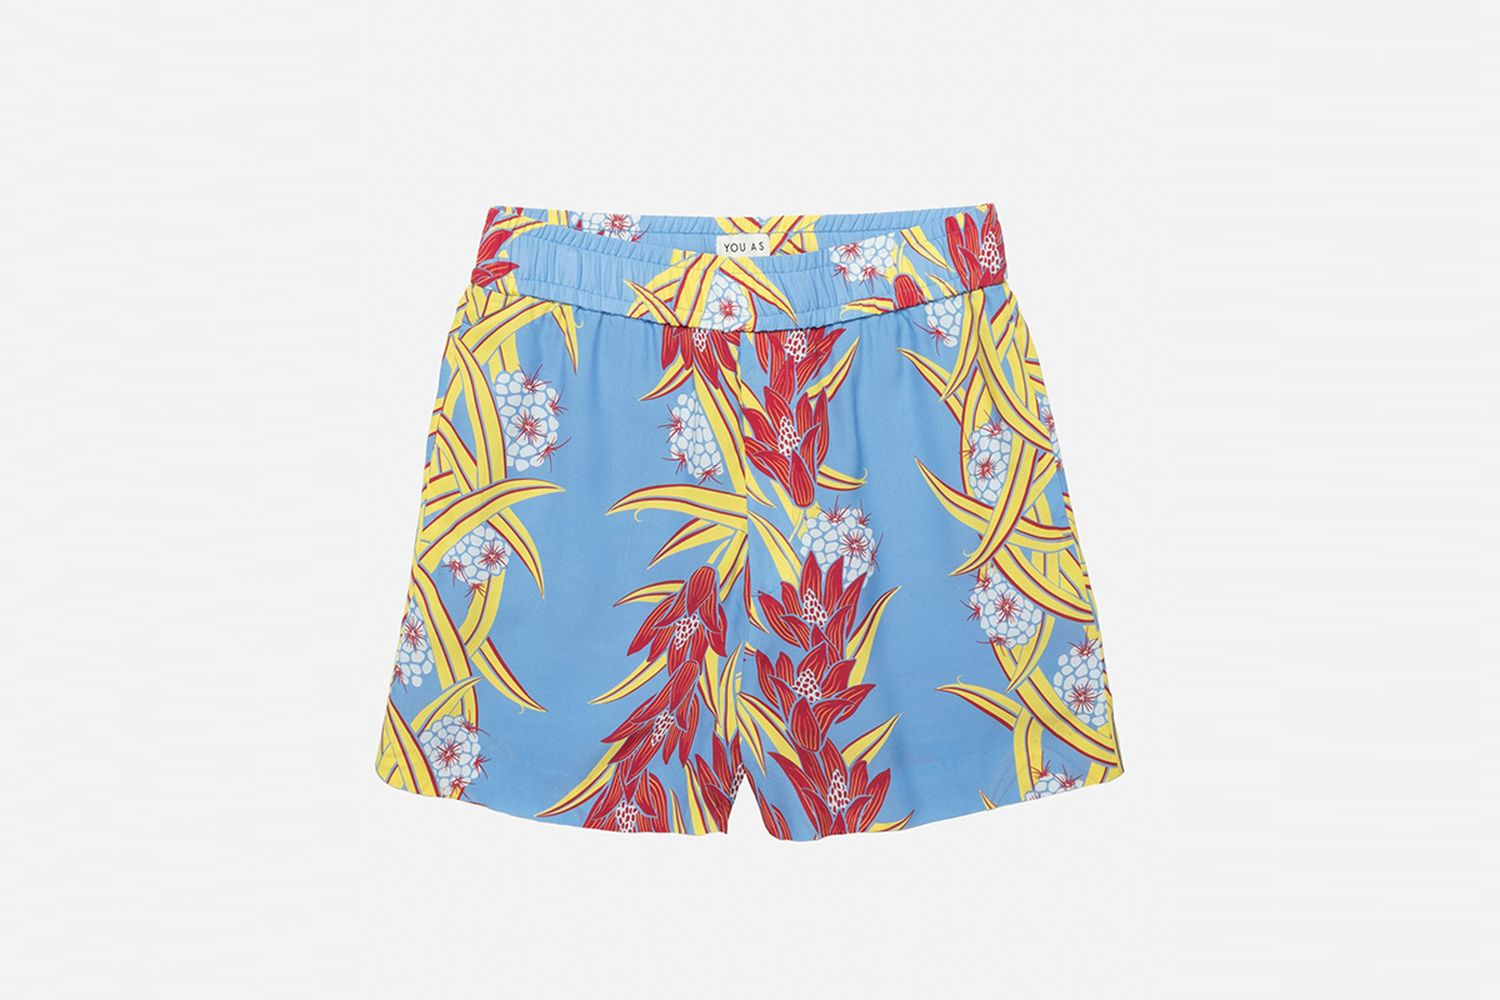 Orion Shorts